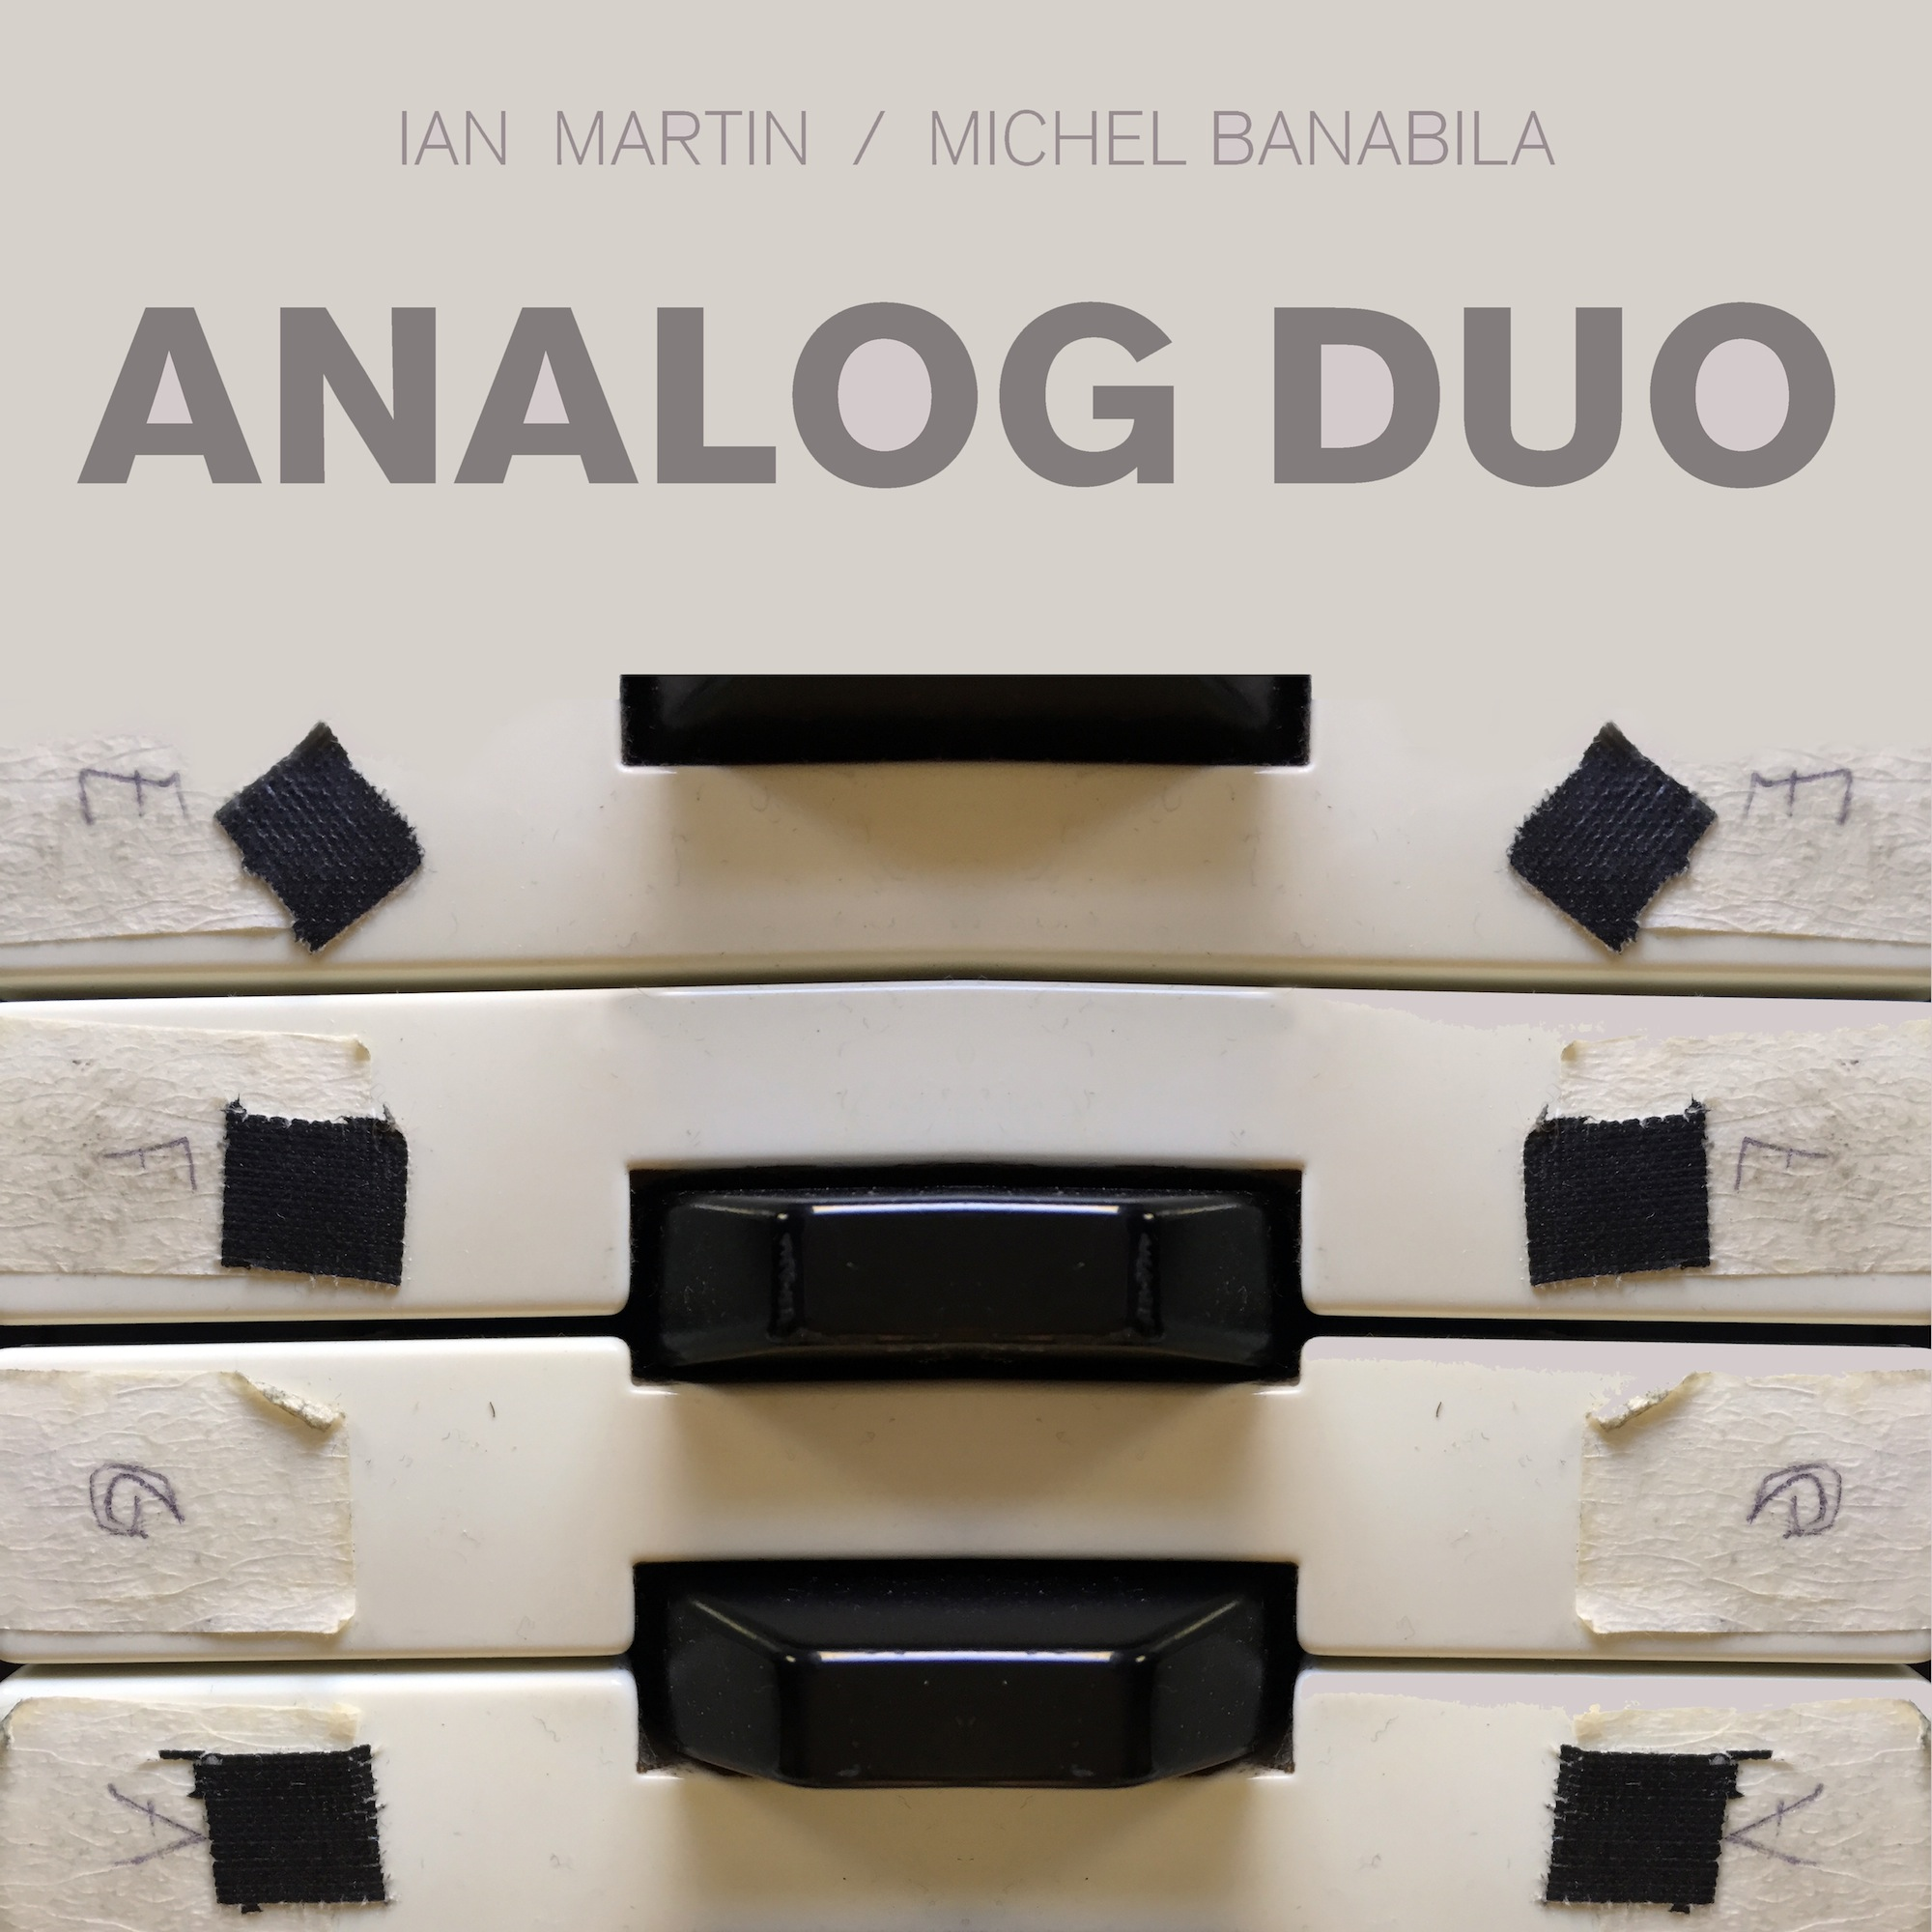 AnalogDuo Artwork Final